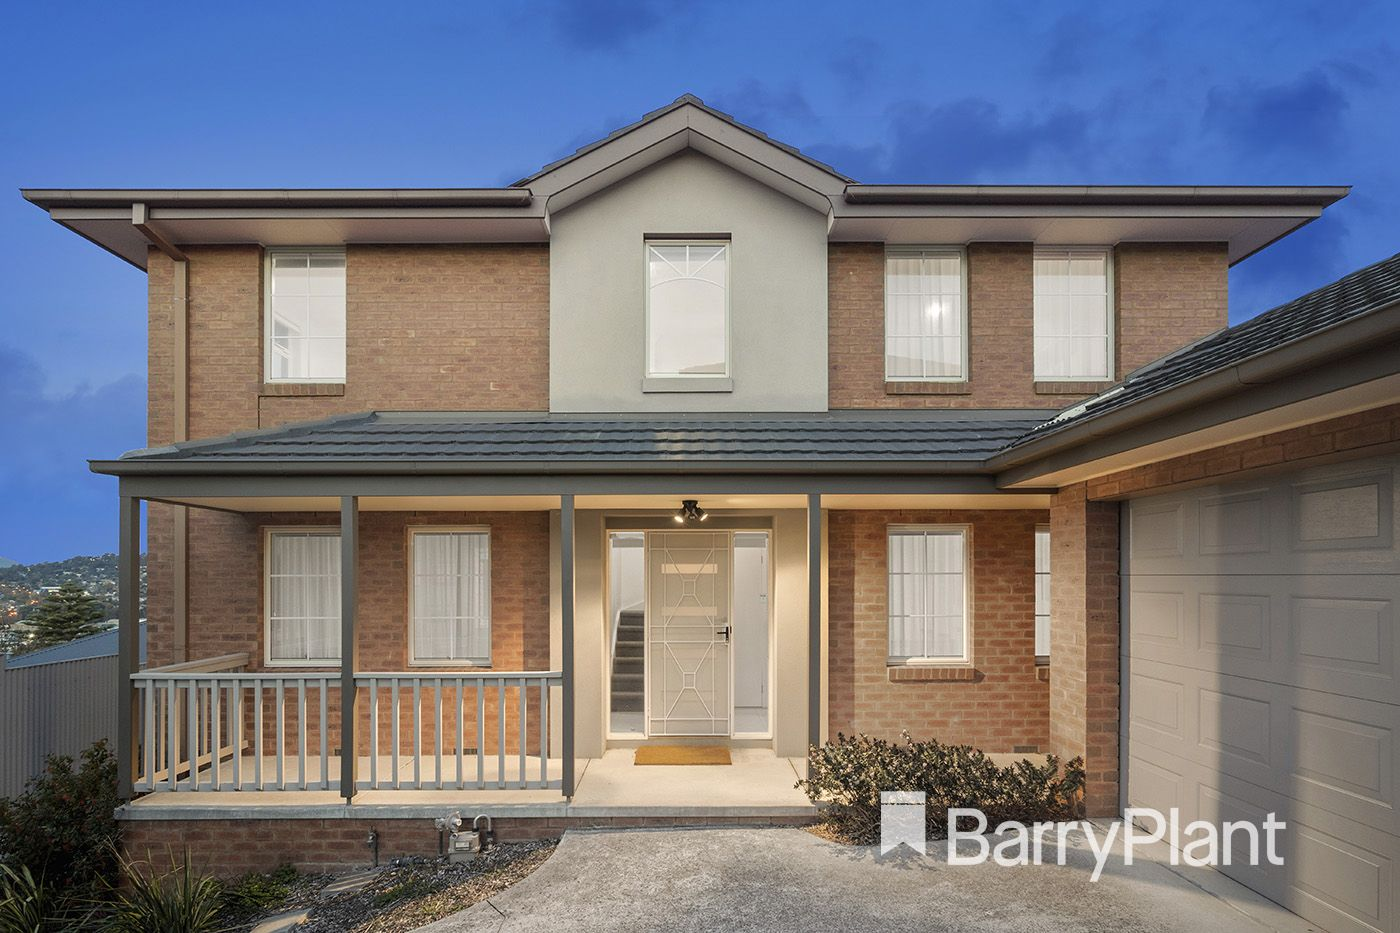 3 bedrooms House in 4/55 Albert Hill Road LILYDALE VIC, 3140